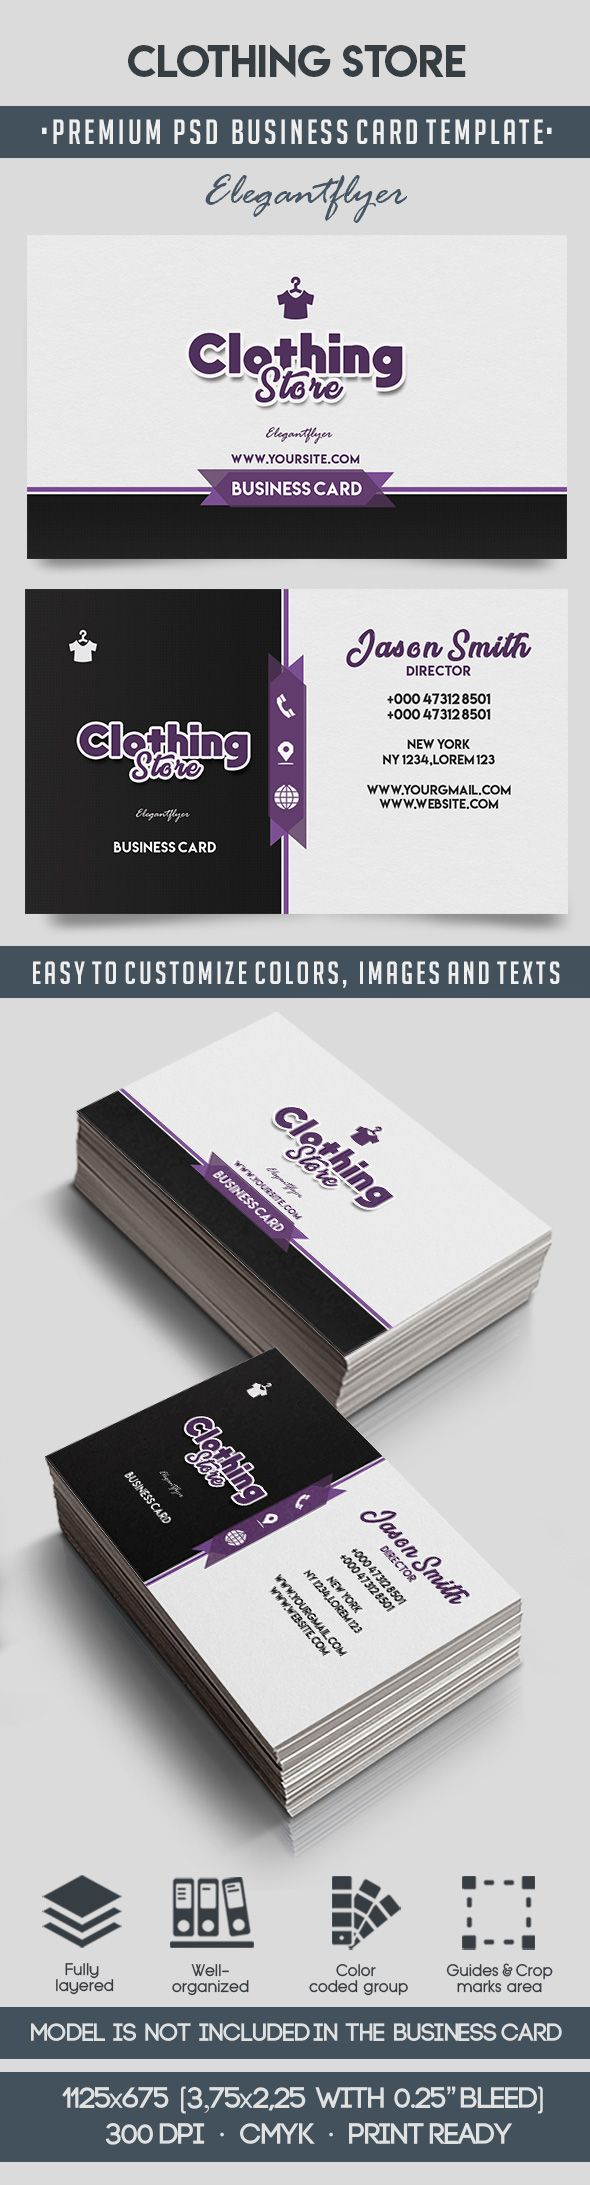 Clothing store business card templates psd by elegantflyer clothing store business card templates psd colourmoves